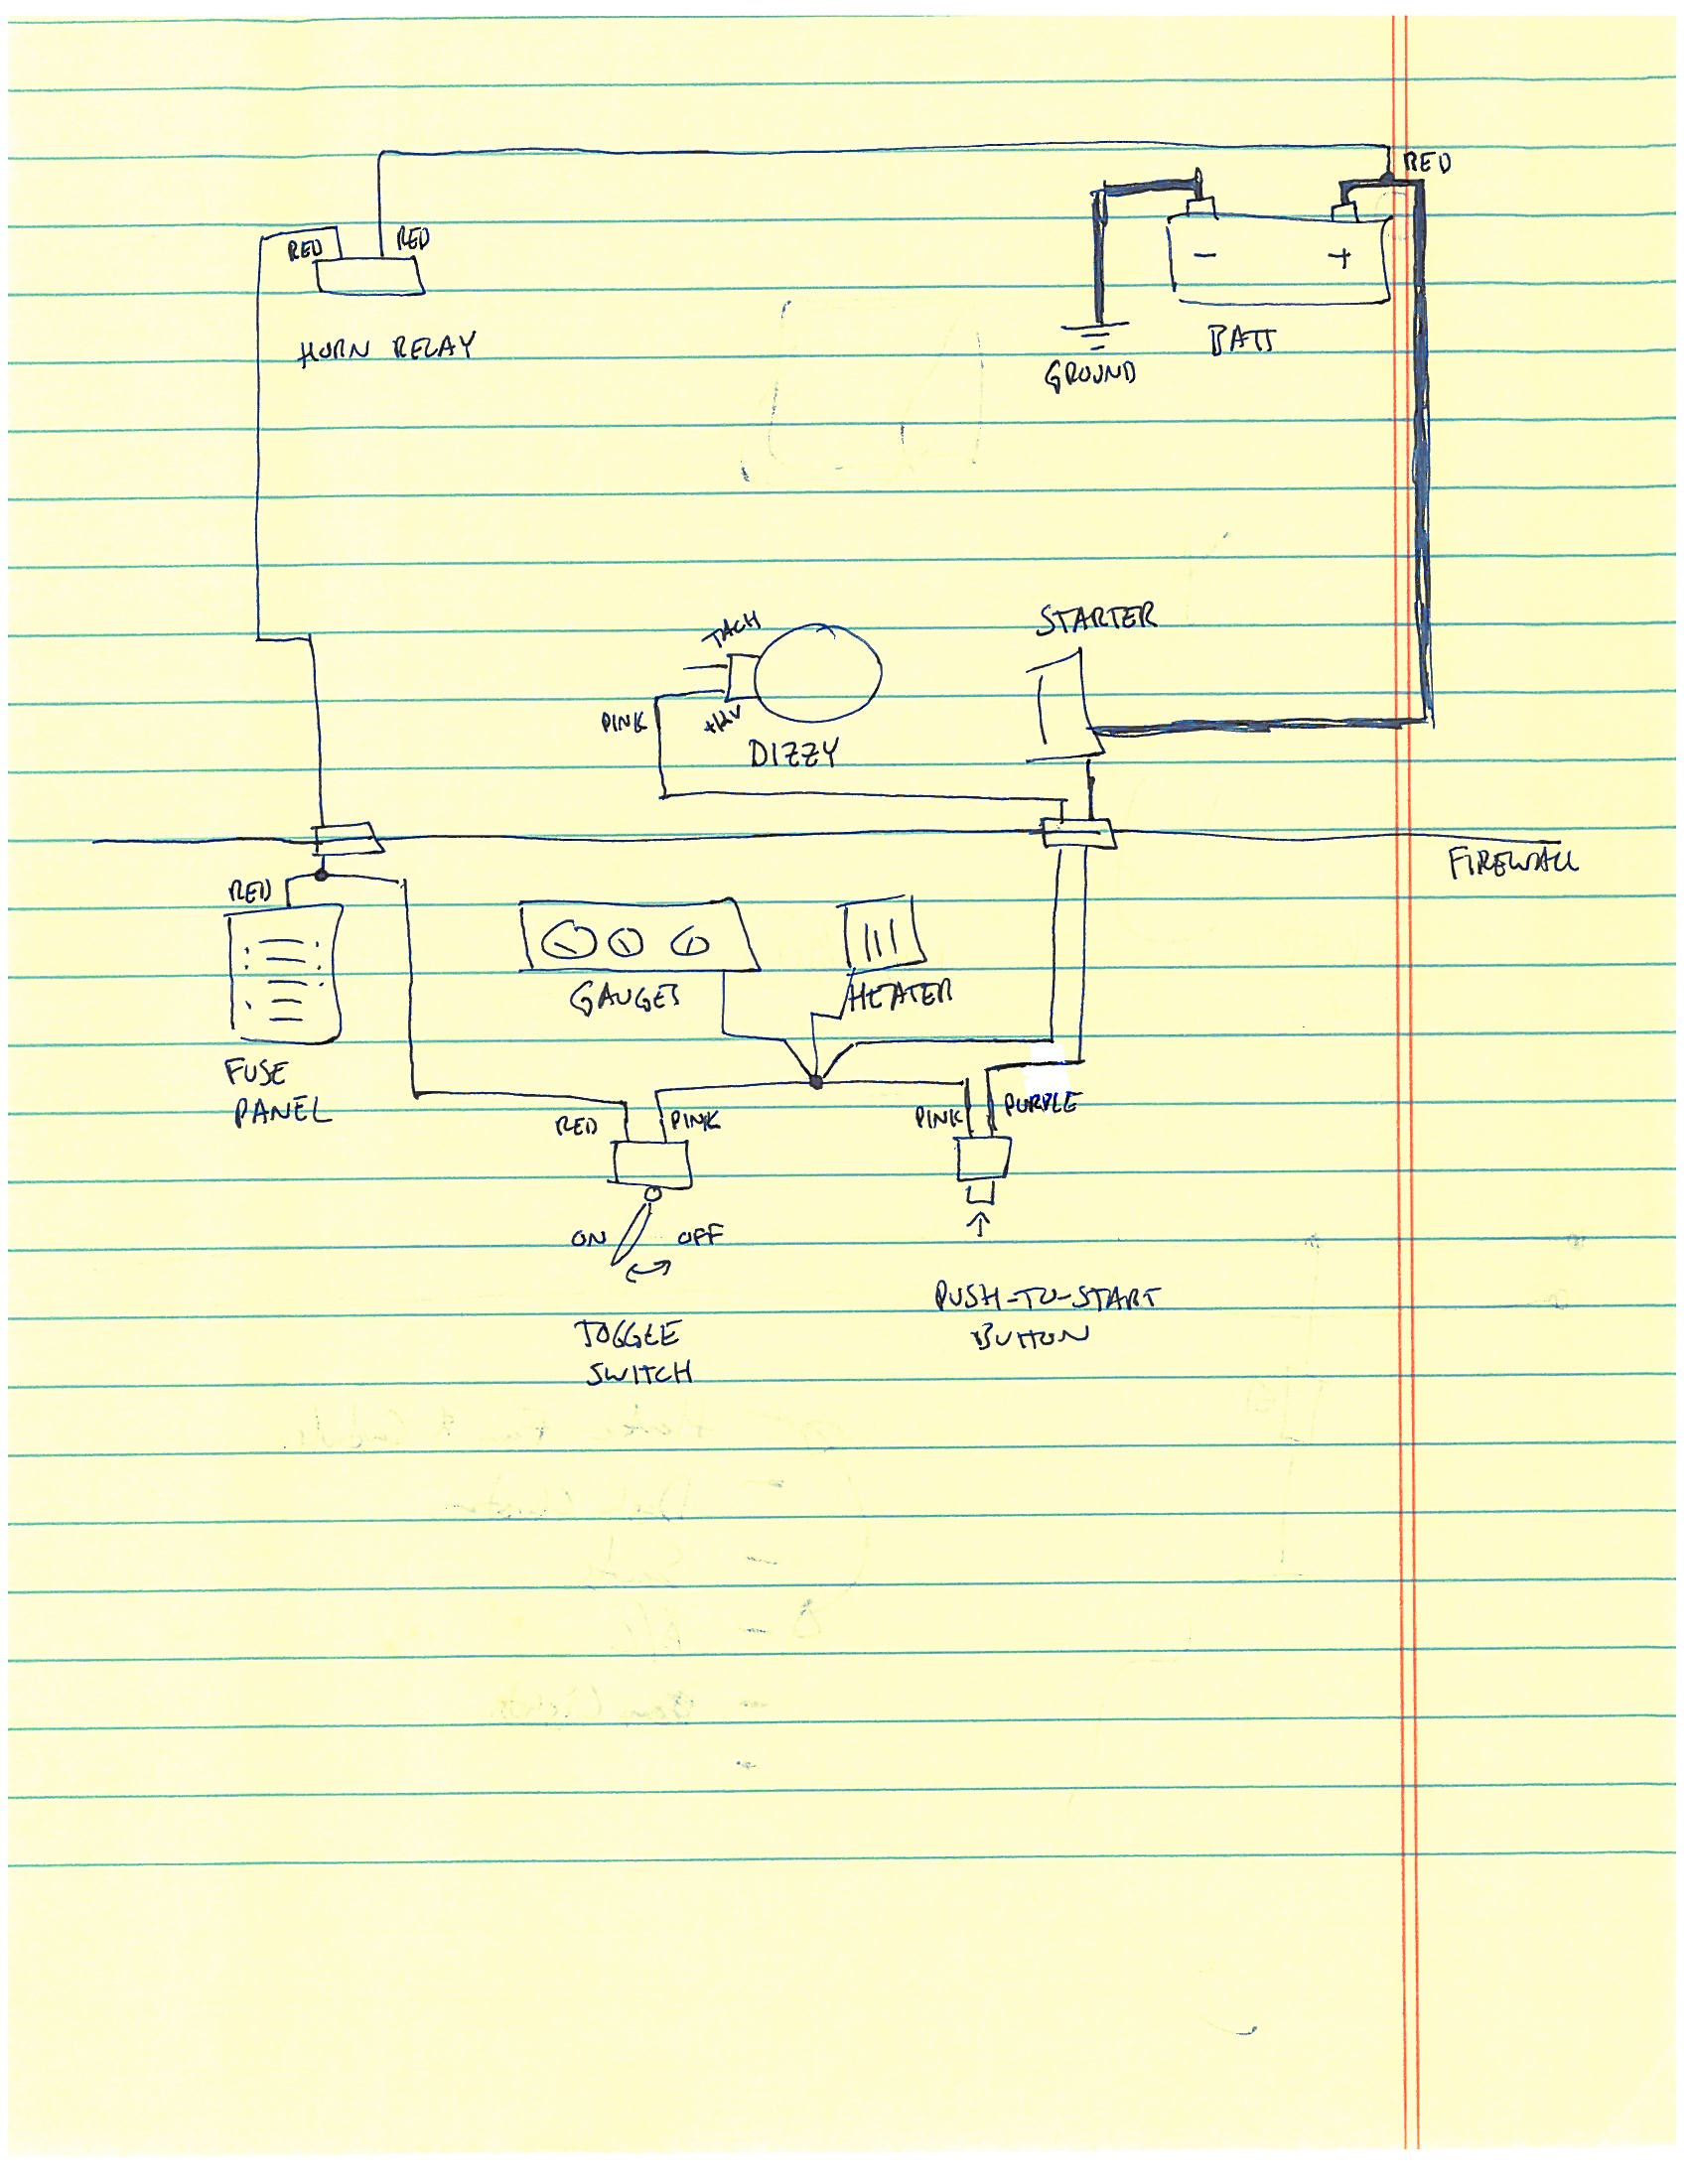 1967 Chevy C10 Wiper Switch Wiring Diagram Product Wiring Diagrams \u2022 70 Chevy Truck Wiring